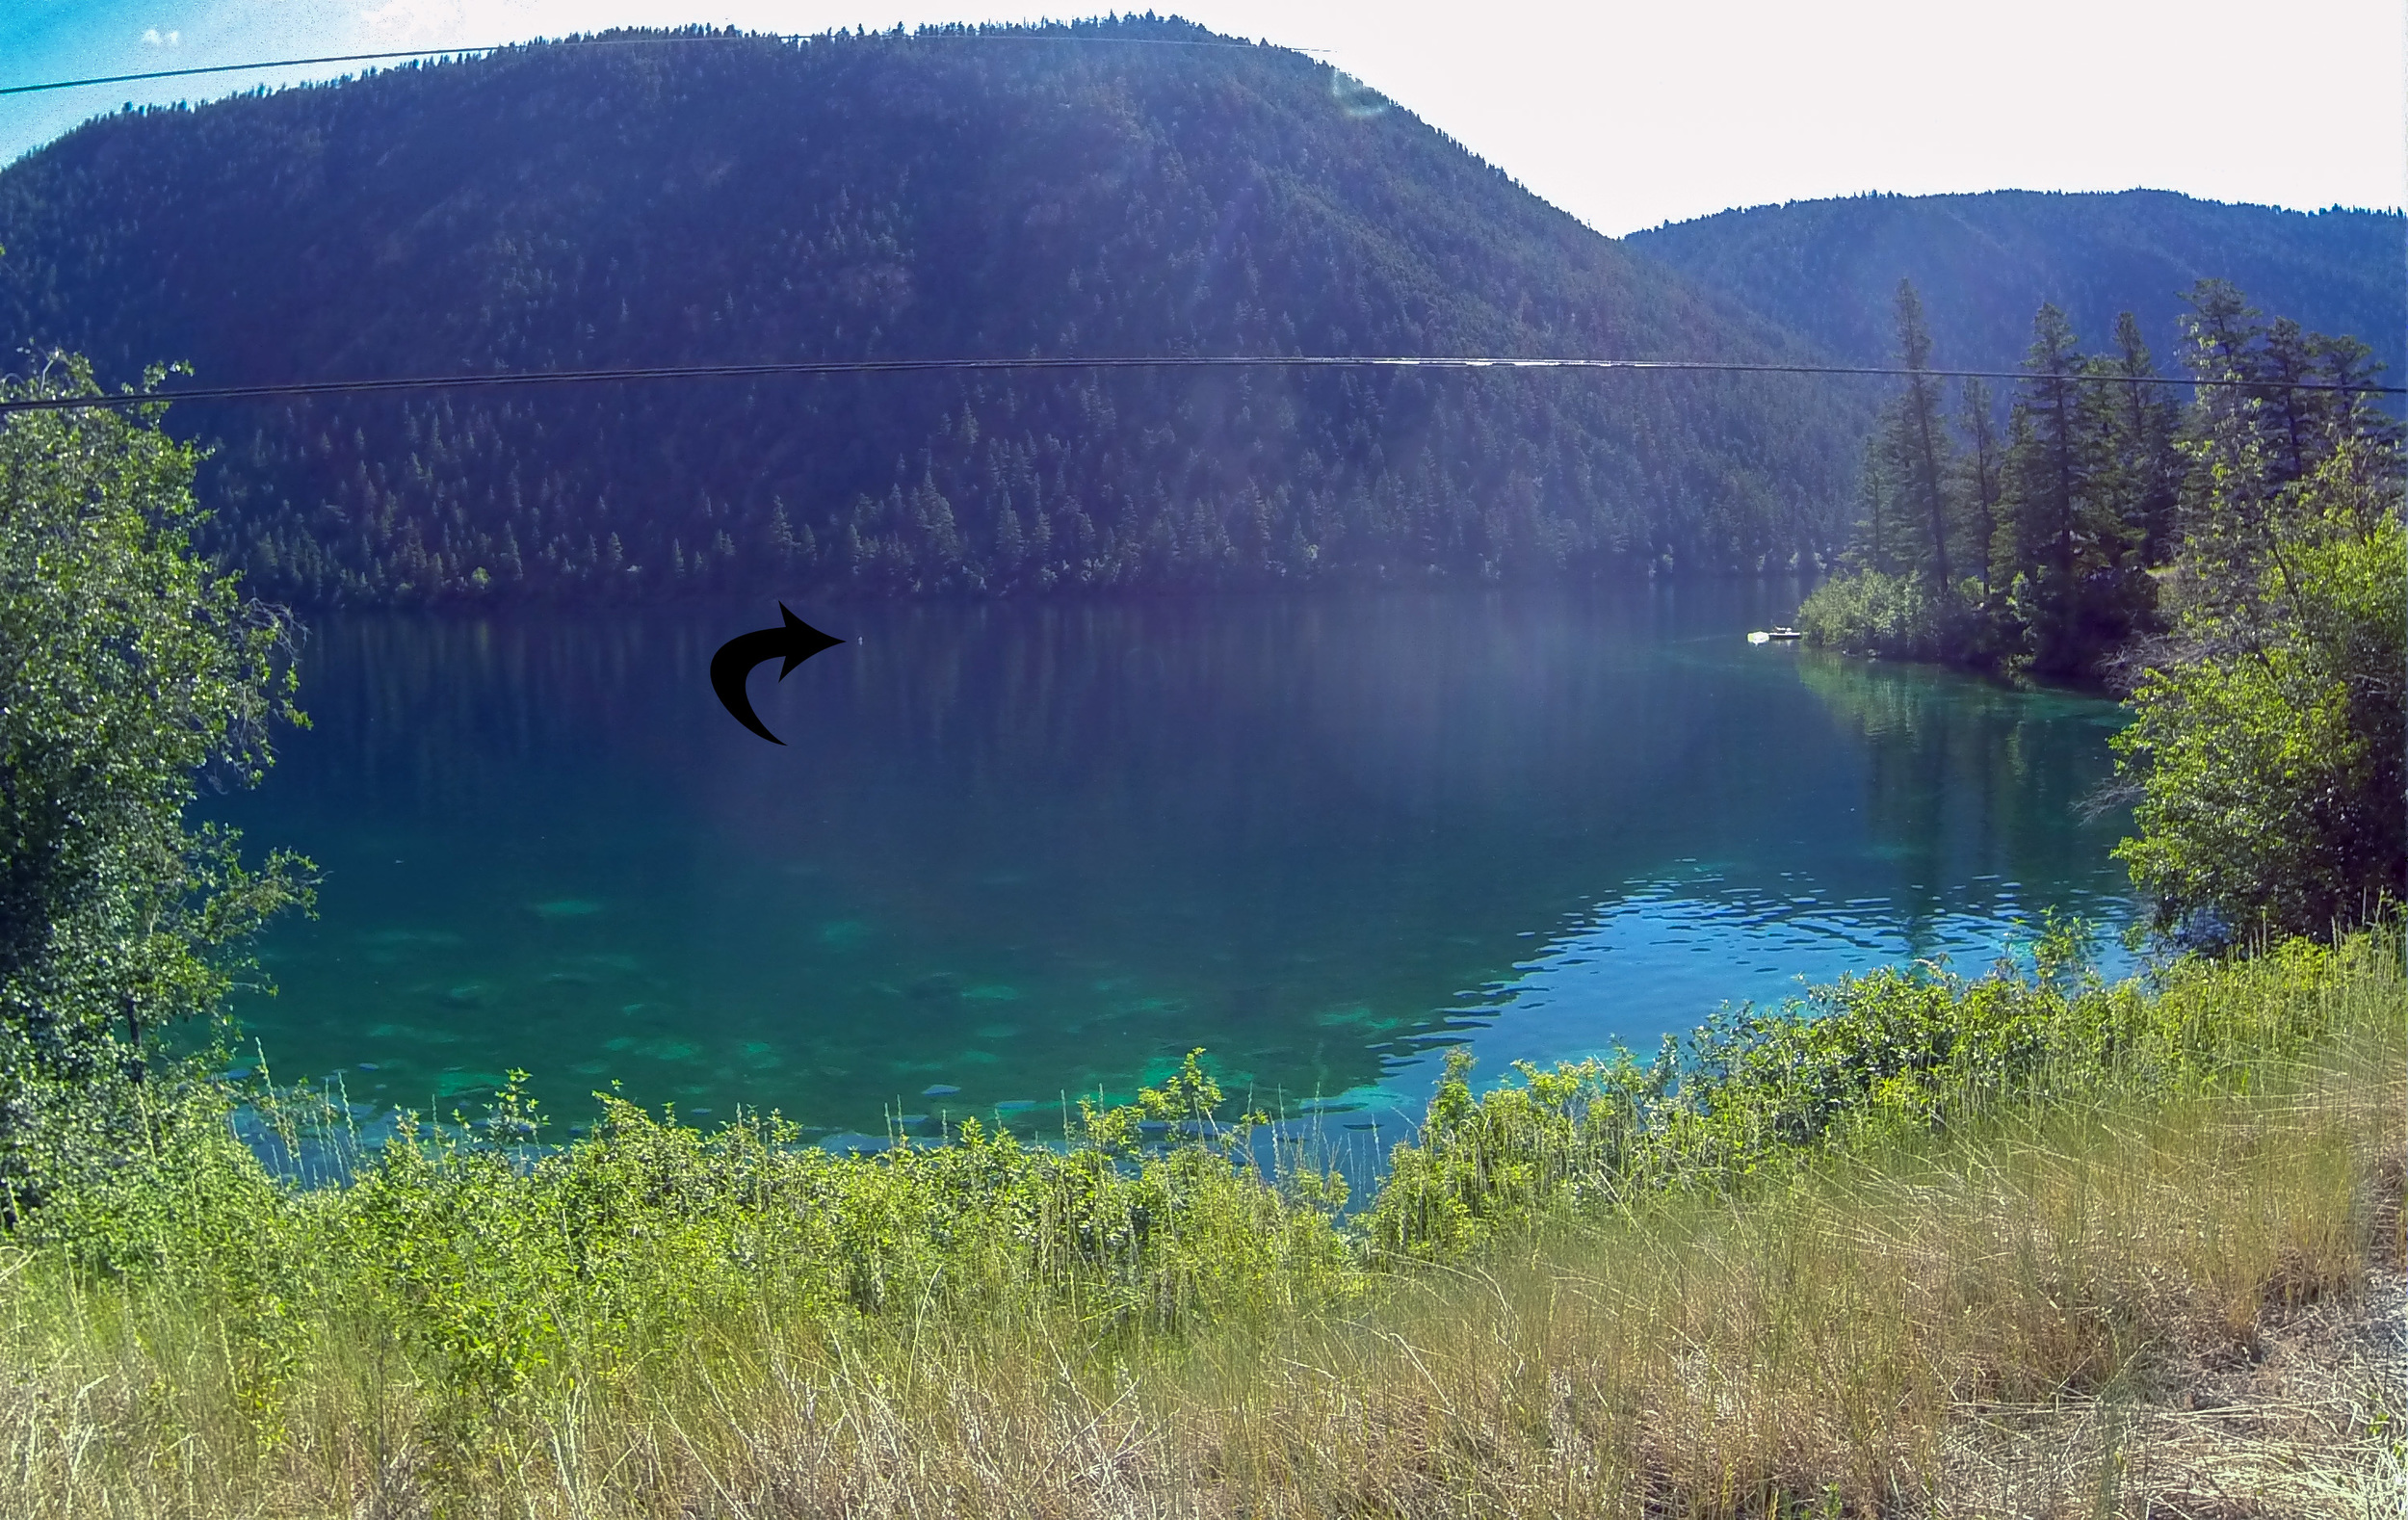 Arrow marks the diver's float and descent line to the microbialite structures. The float is close to the middle of the lake